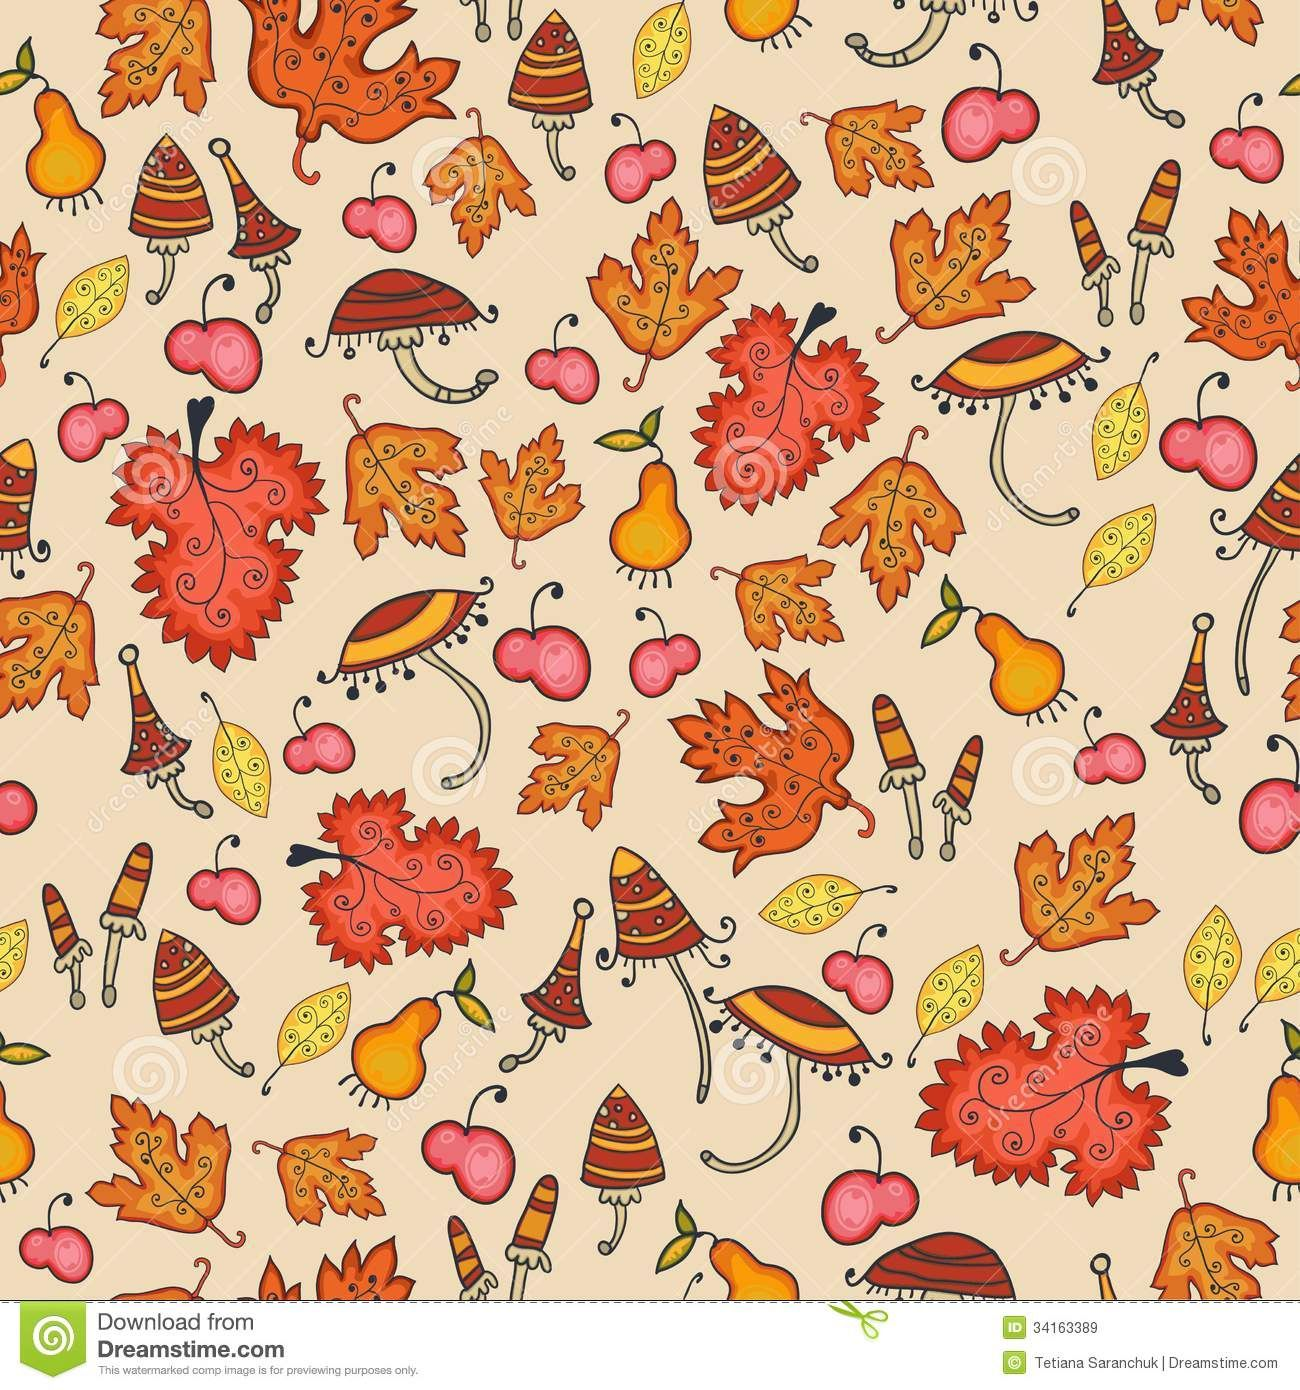 Iphone wallpaper tumblr fall - Fall Wallpaper